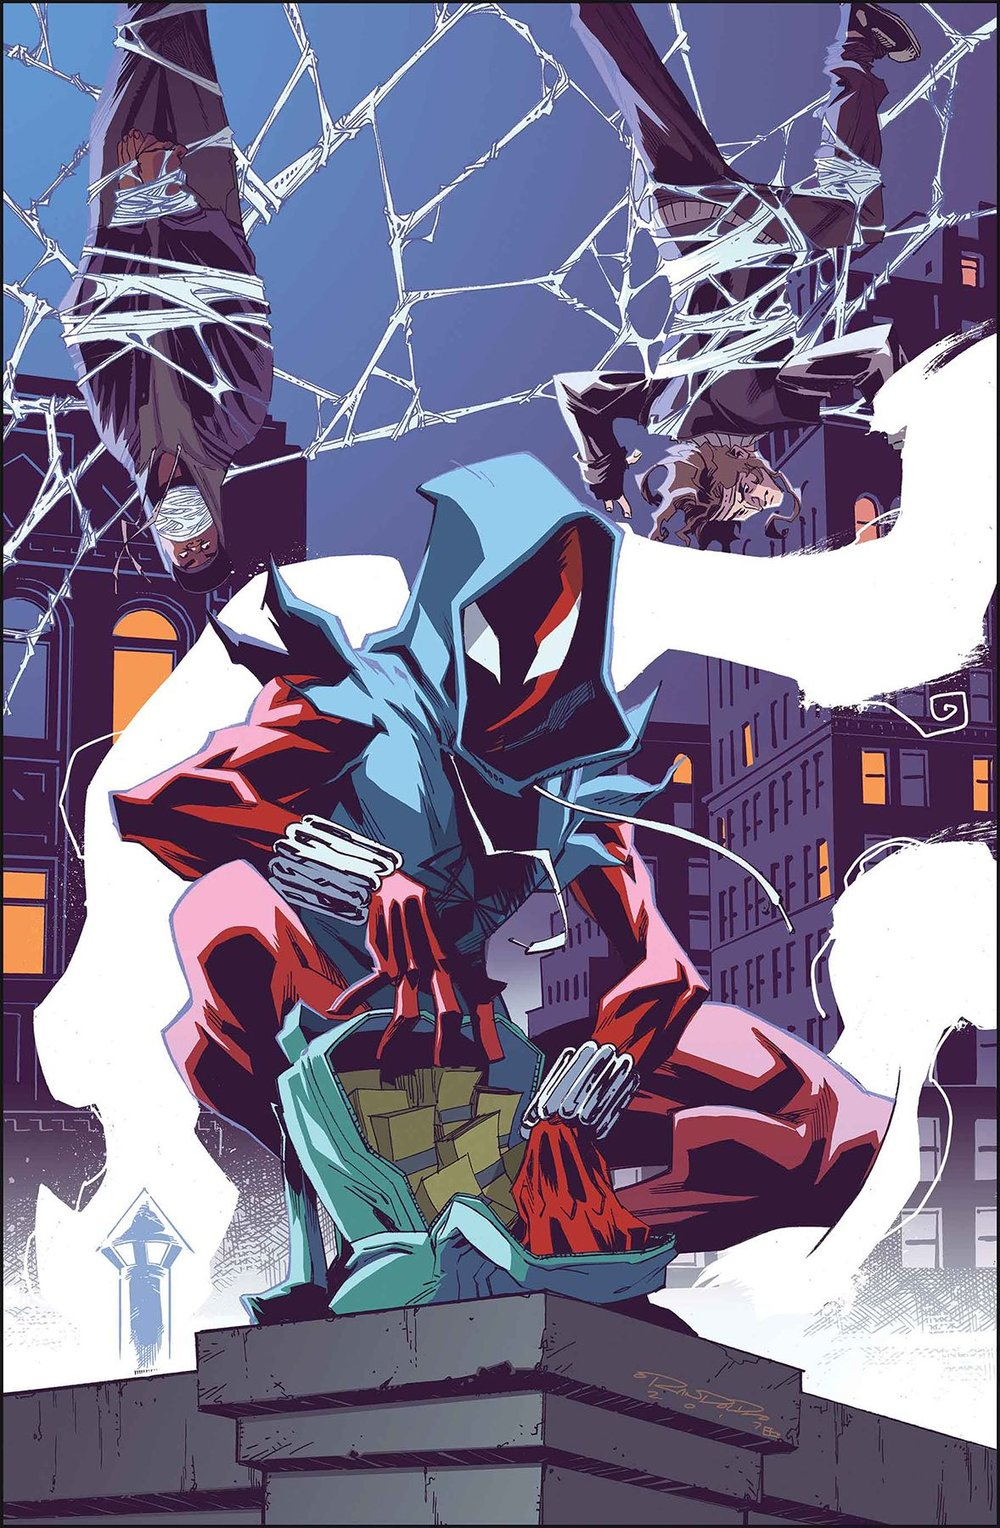 Episode 23 Cover of the Week! - (Marvel) Ben Reilly : The Scarlet Spider #14Cover by Khary RandolphWritten by Peter DavidIllustrated by Will SlineyDid the Content Match the Drapes? - UNR